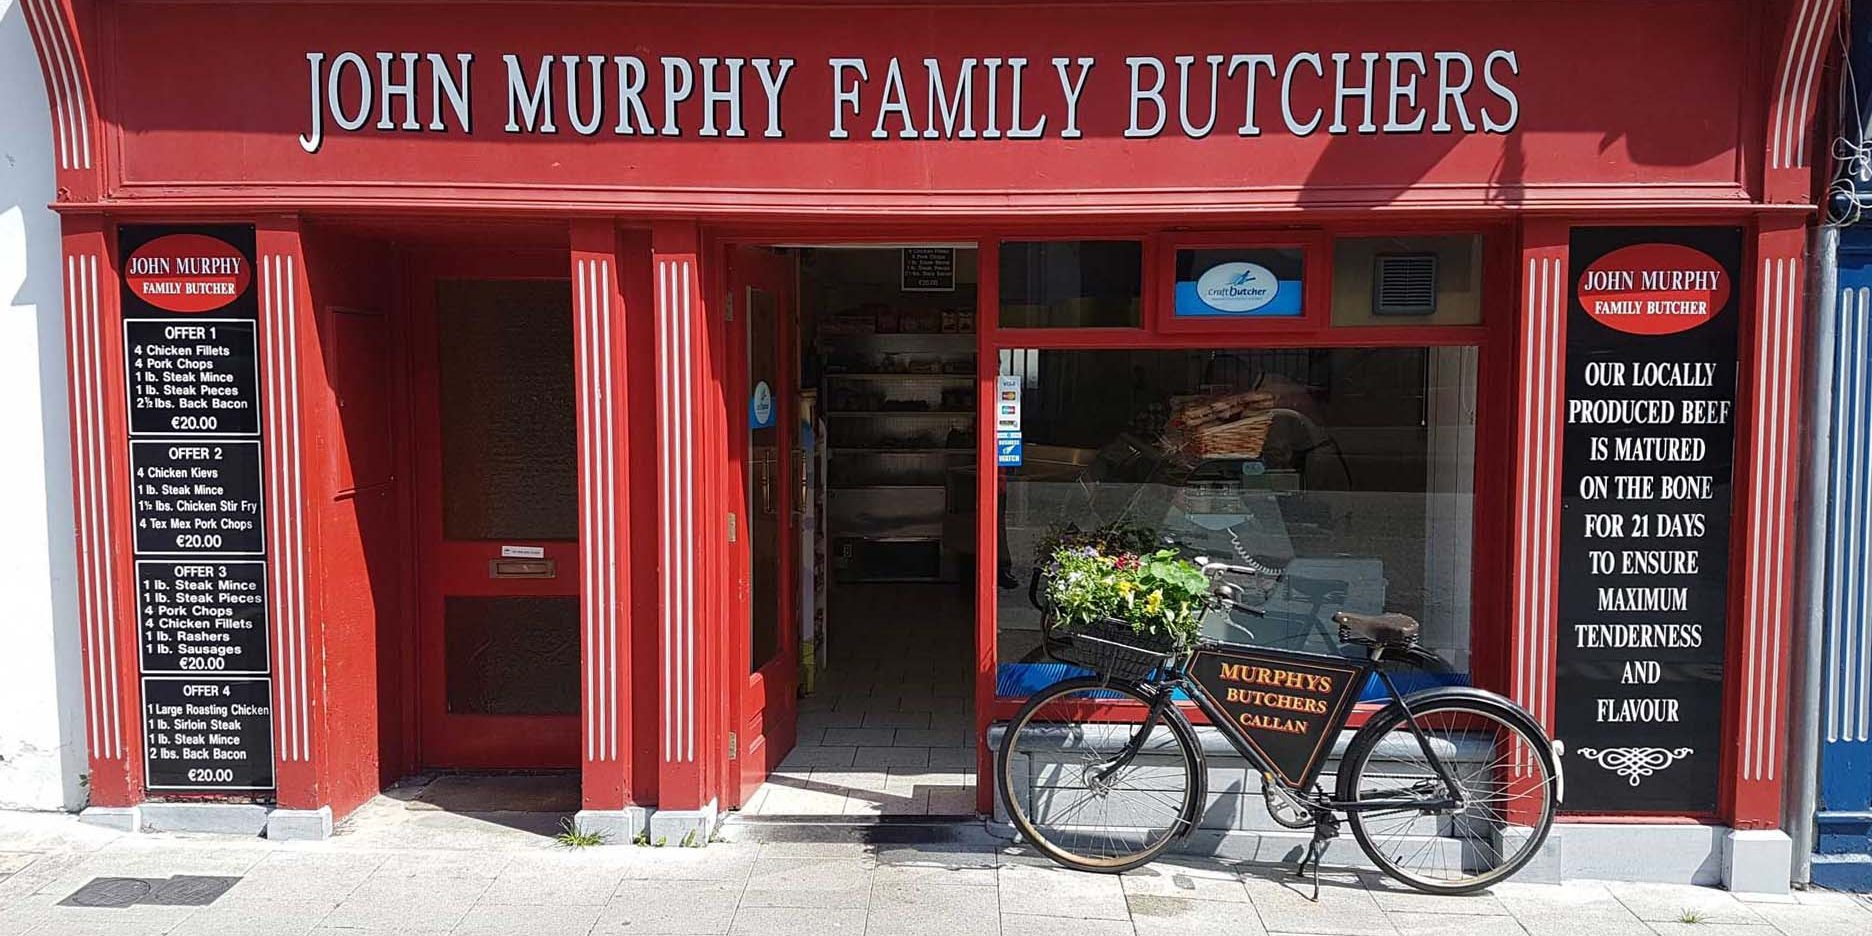 John Murphy Family Butchers shop front